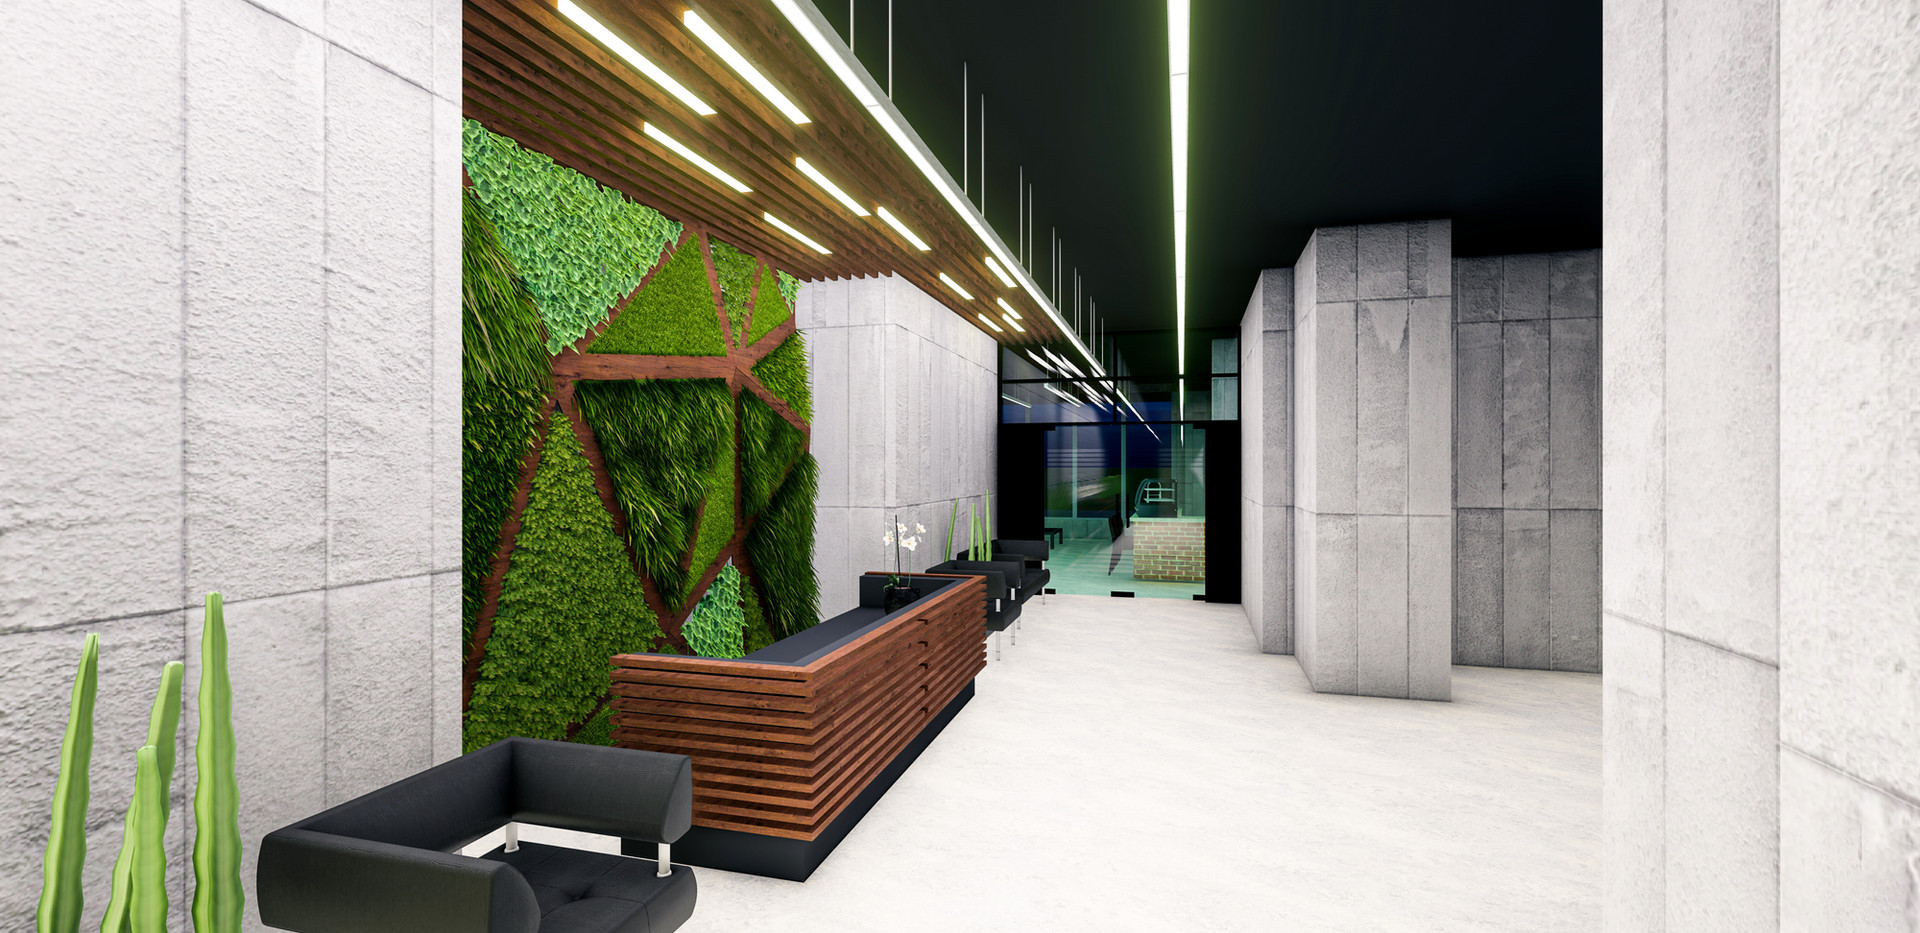 The Desk - Green Wall